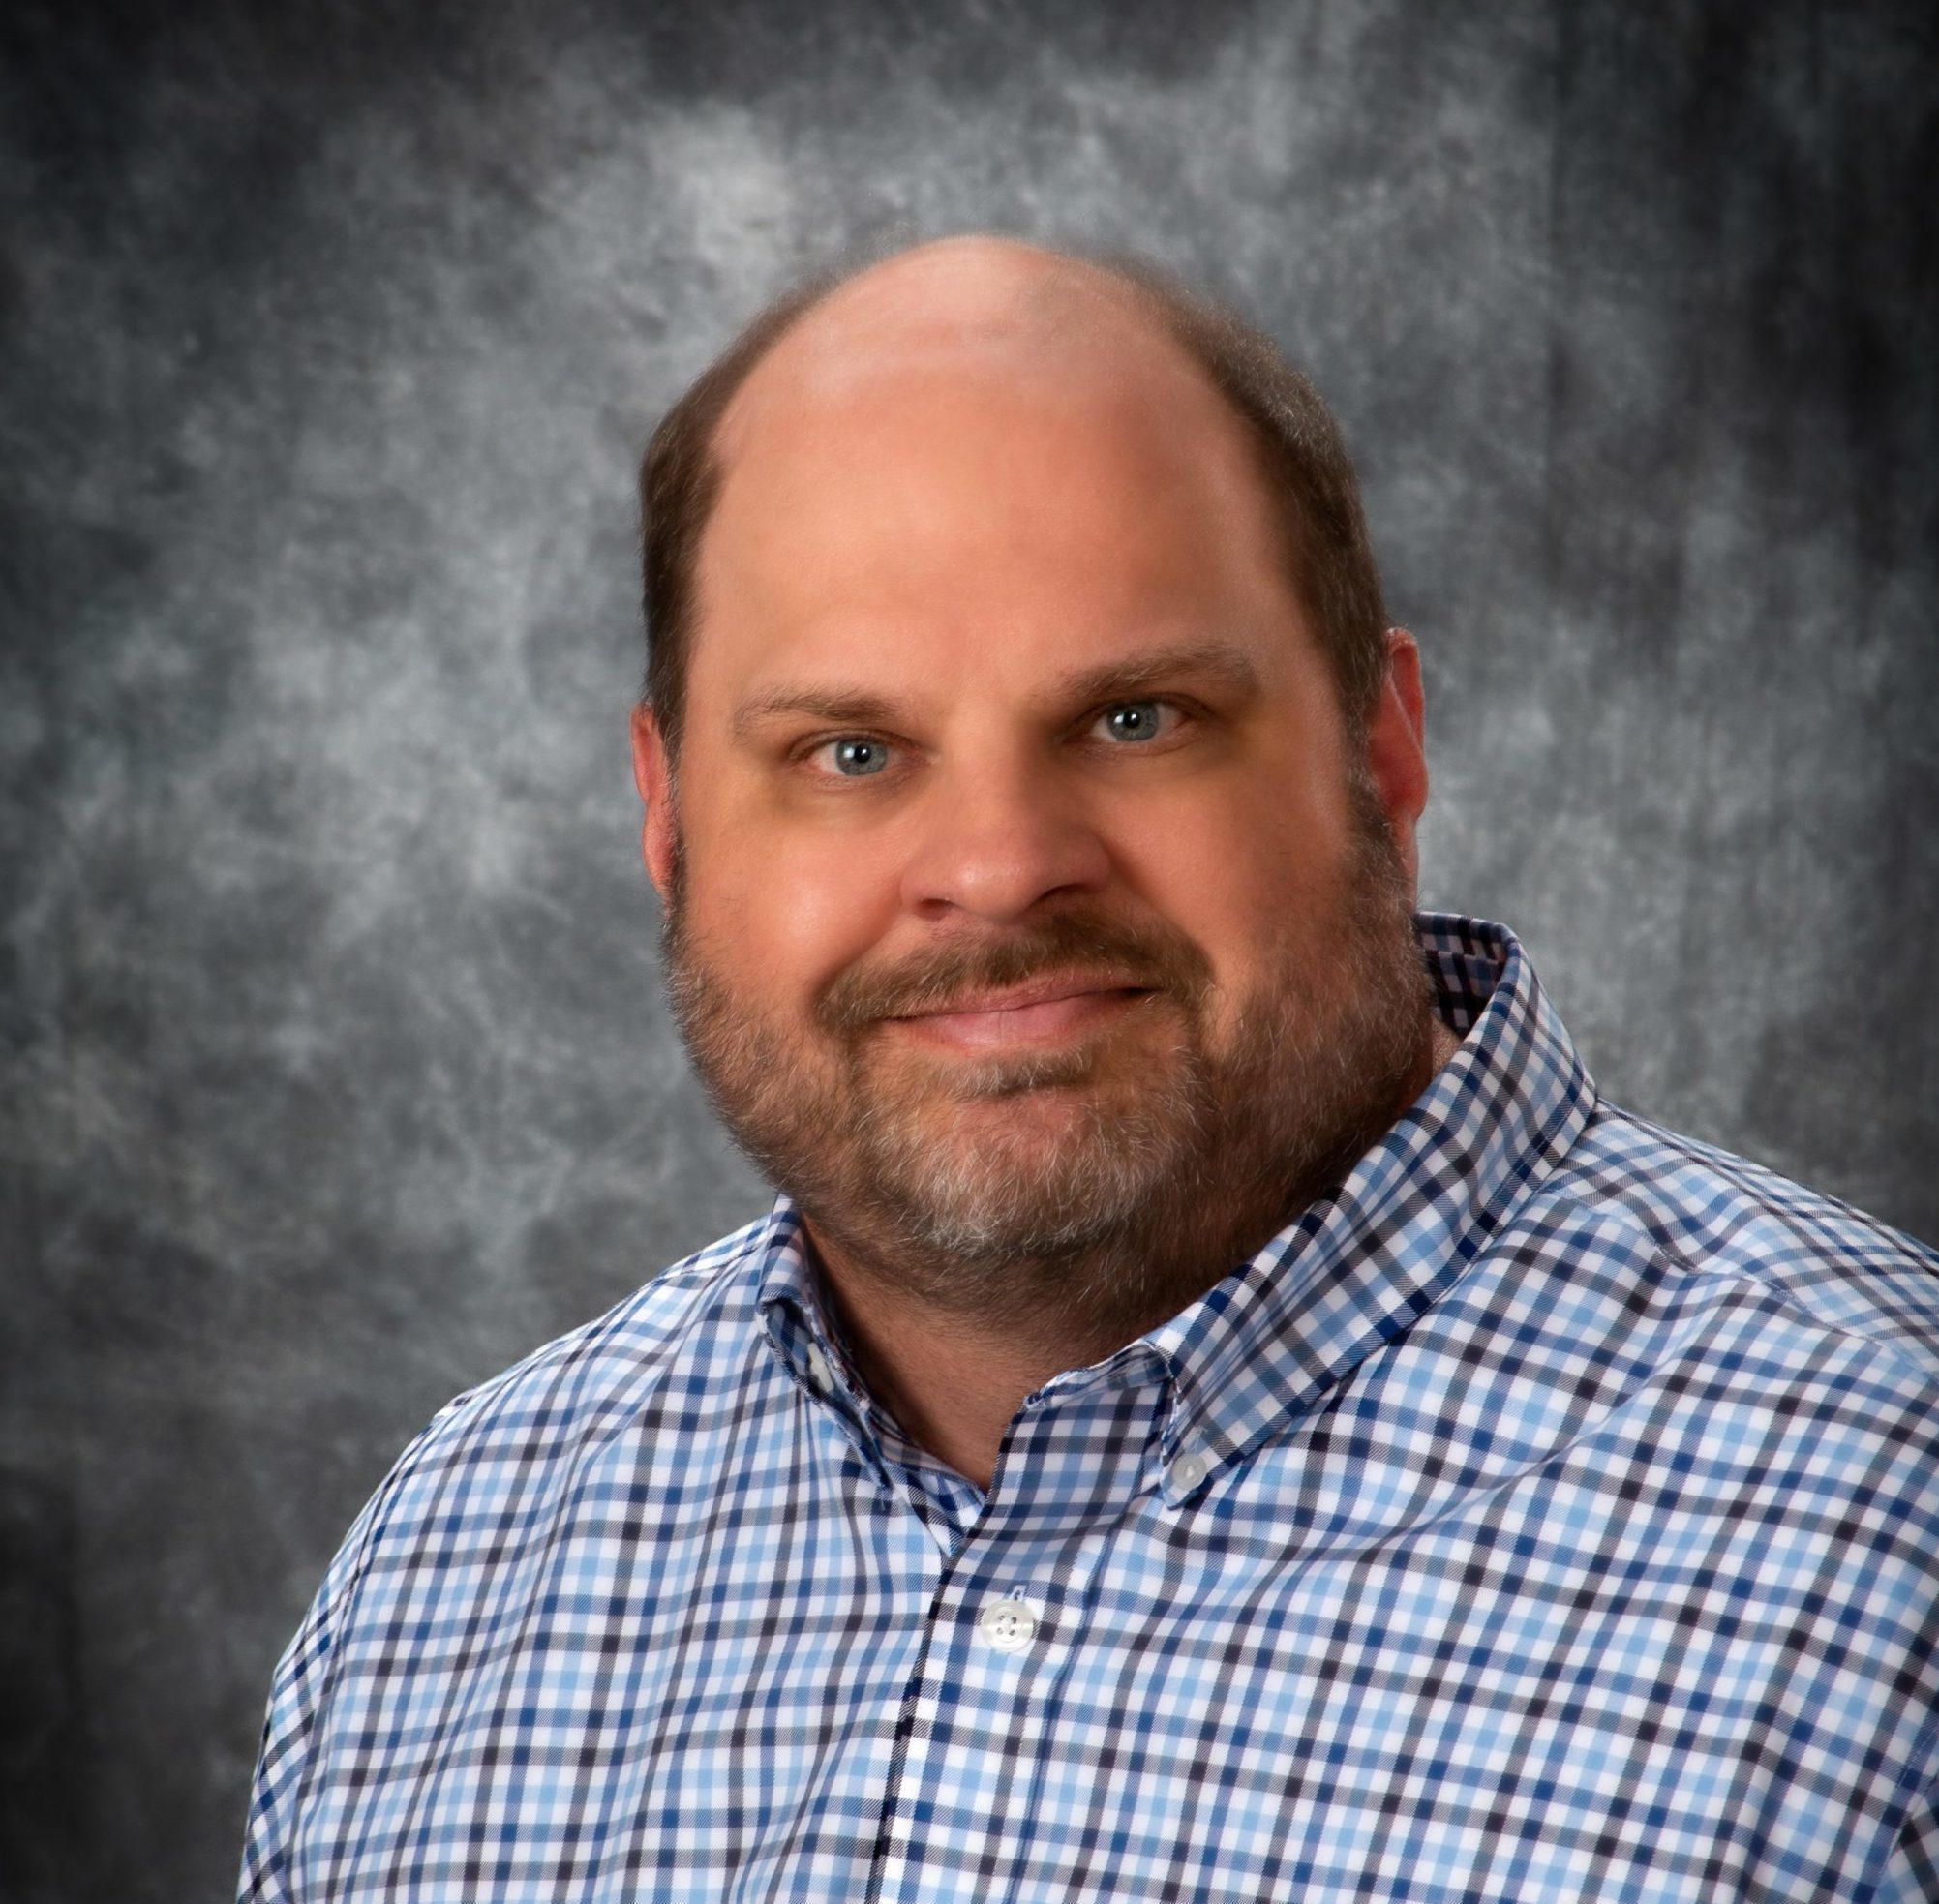 Dr. Jeremy Bolluyt, smiling at camera, wearing a blue plaid, button-down shirt.